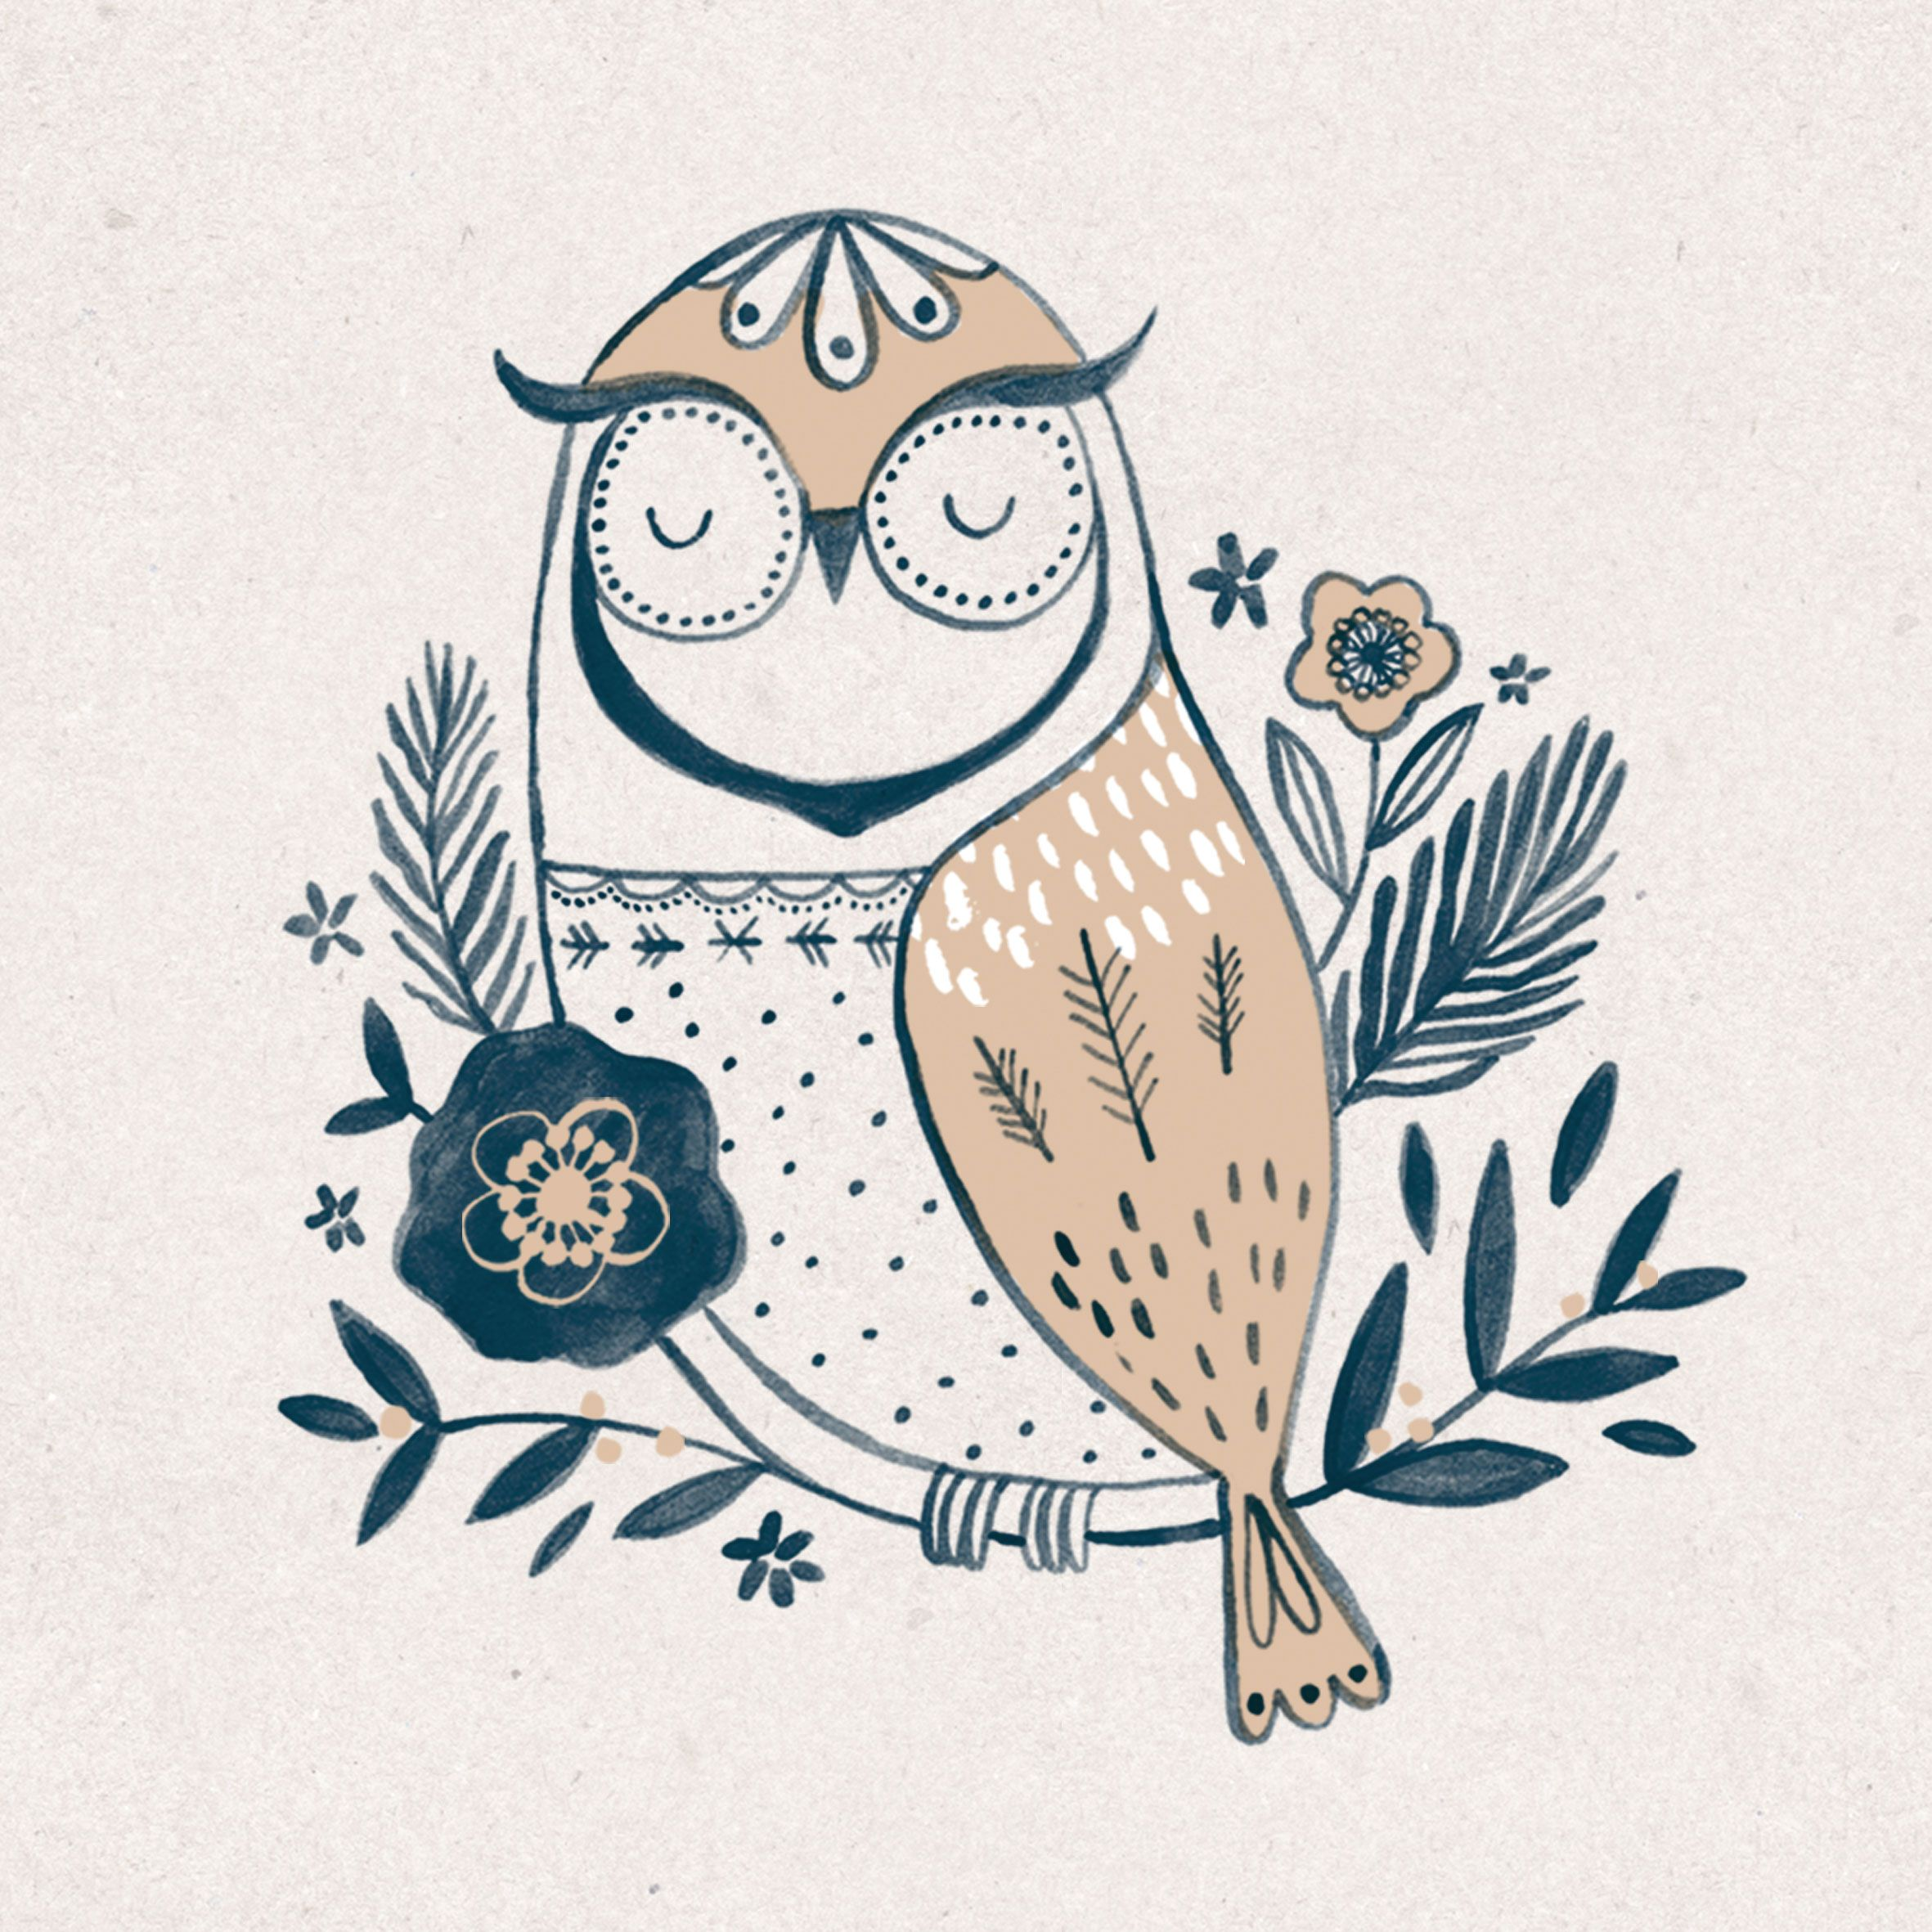 Girlscout // Wise Owl // scoutshonour co uk |   Girlscout